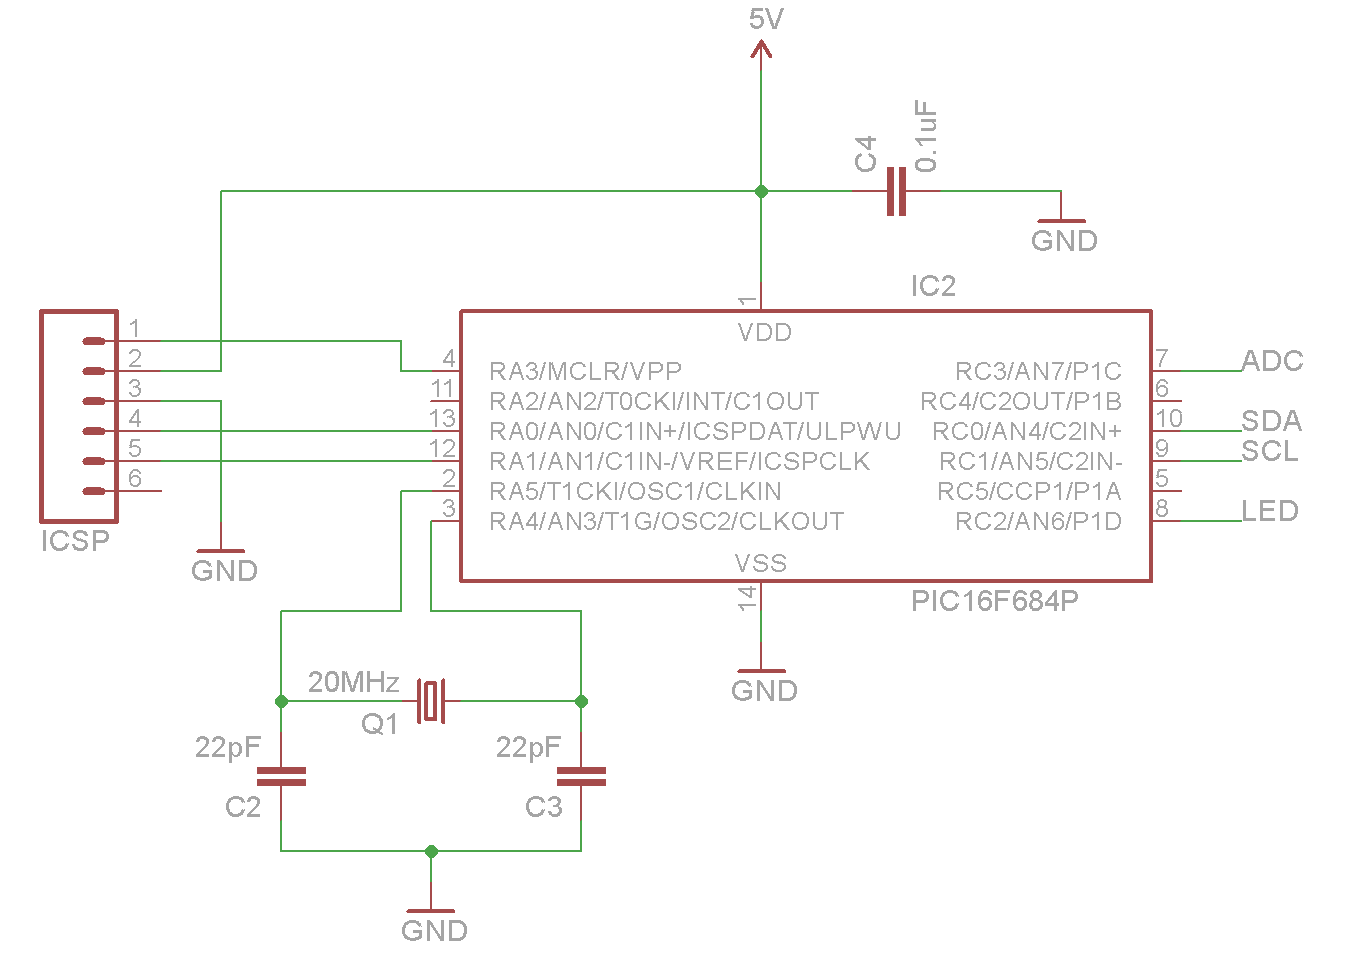 Bored Me Pic A Chip Any Circuit Schematic Electronics Voltage Regulator With Lt1086 You Can See Ive Added An Icsp Header For Programming The In So I Dont Have To Keep Pulling It Out Of Board Every Time Make Change